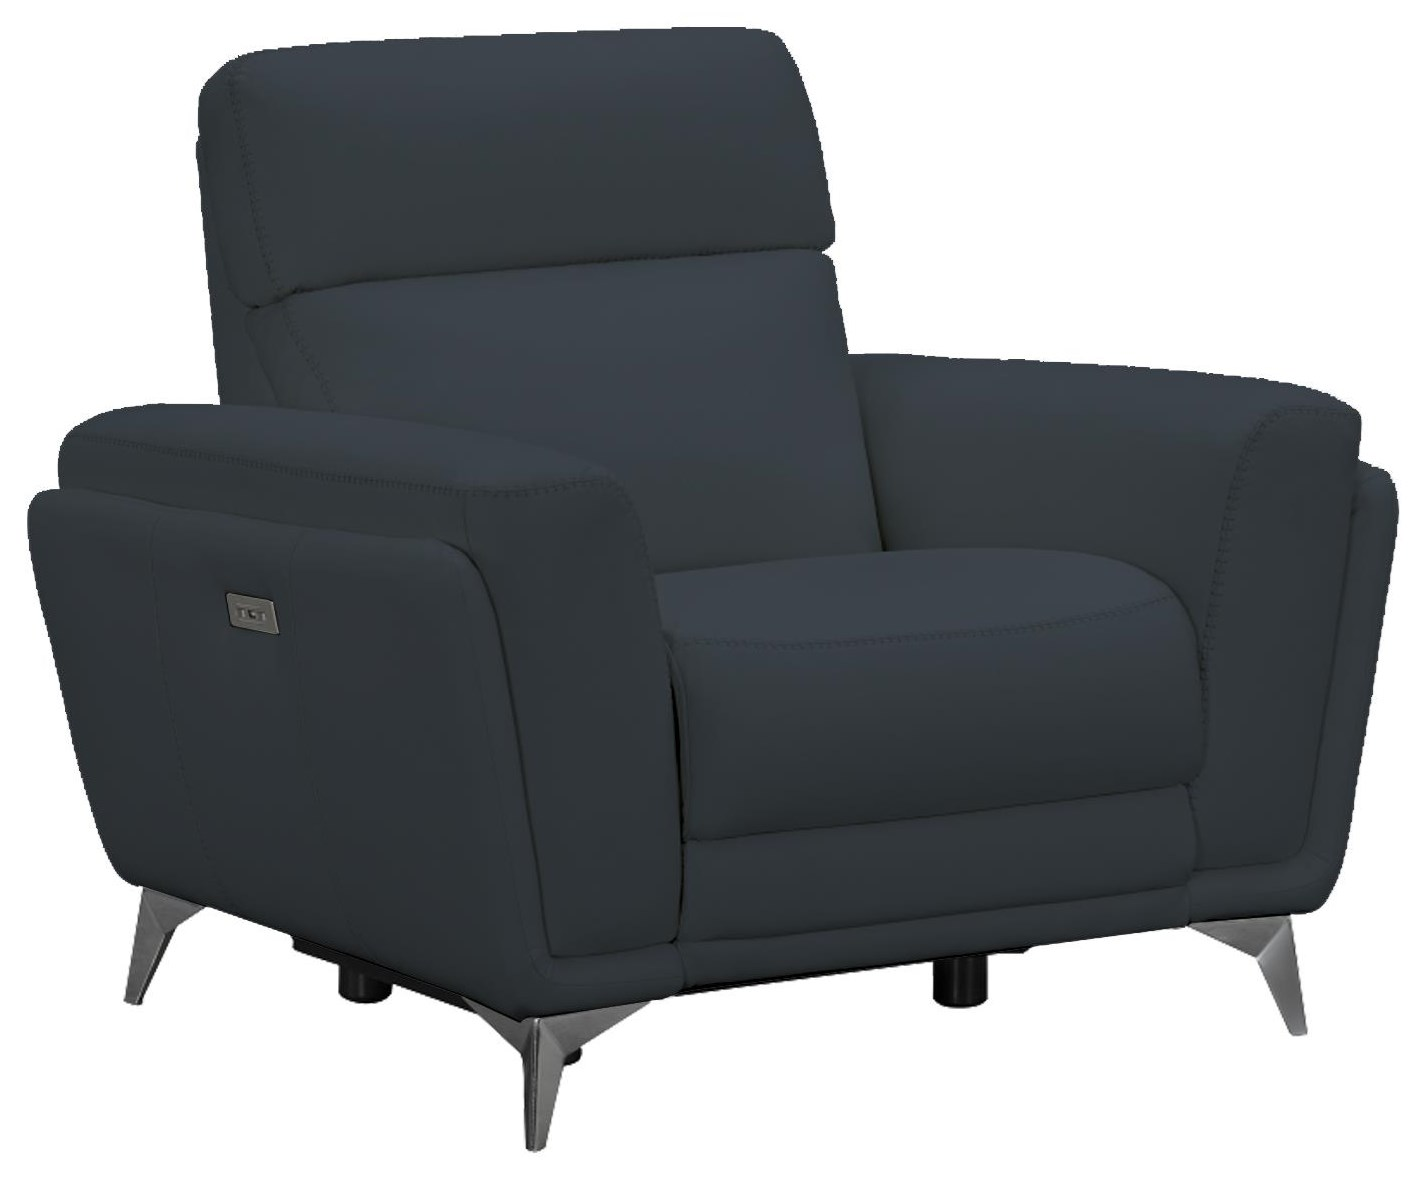 Cameron Recliner by Barcalounger at Johnny Janosik